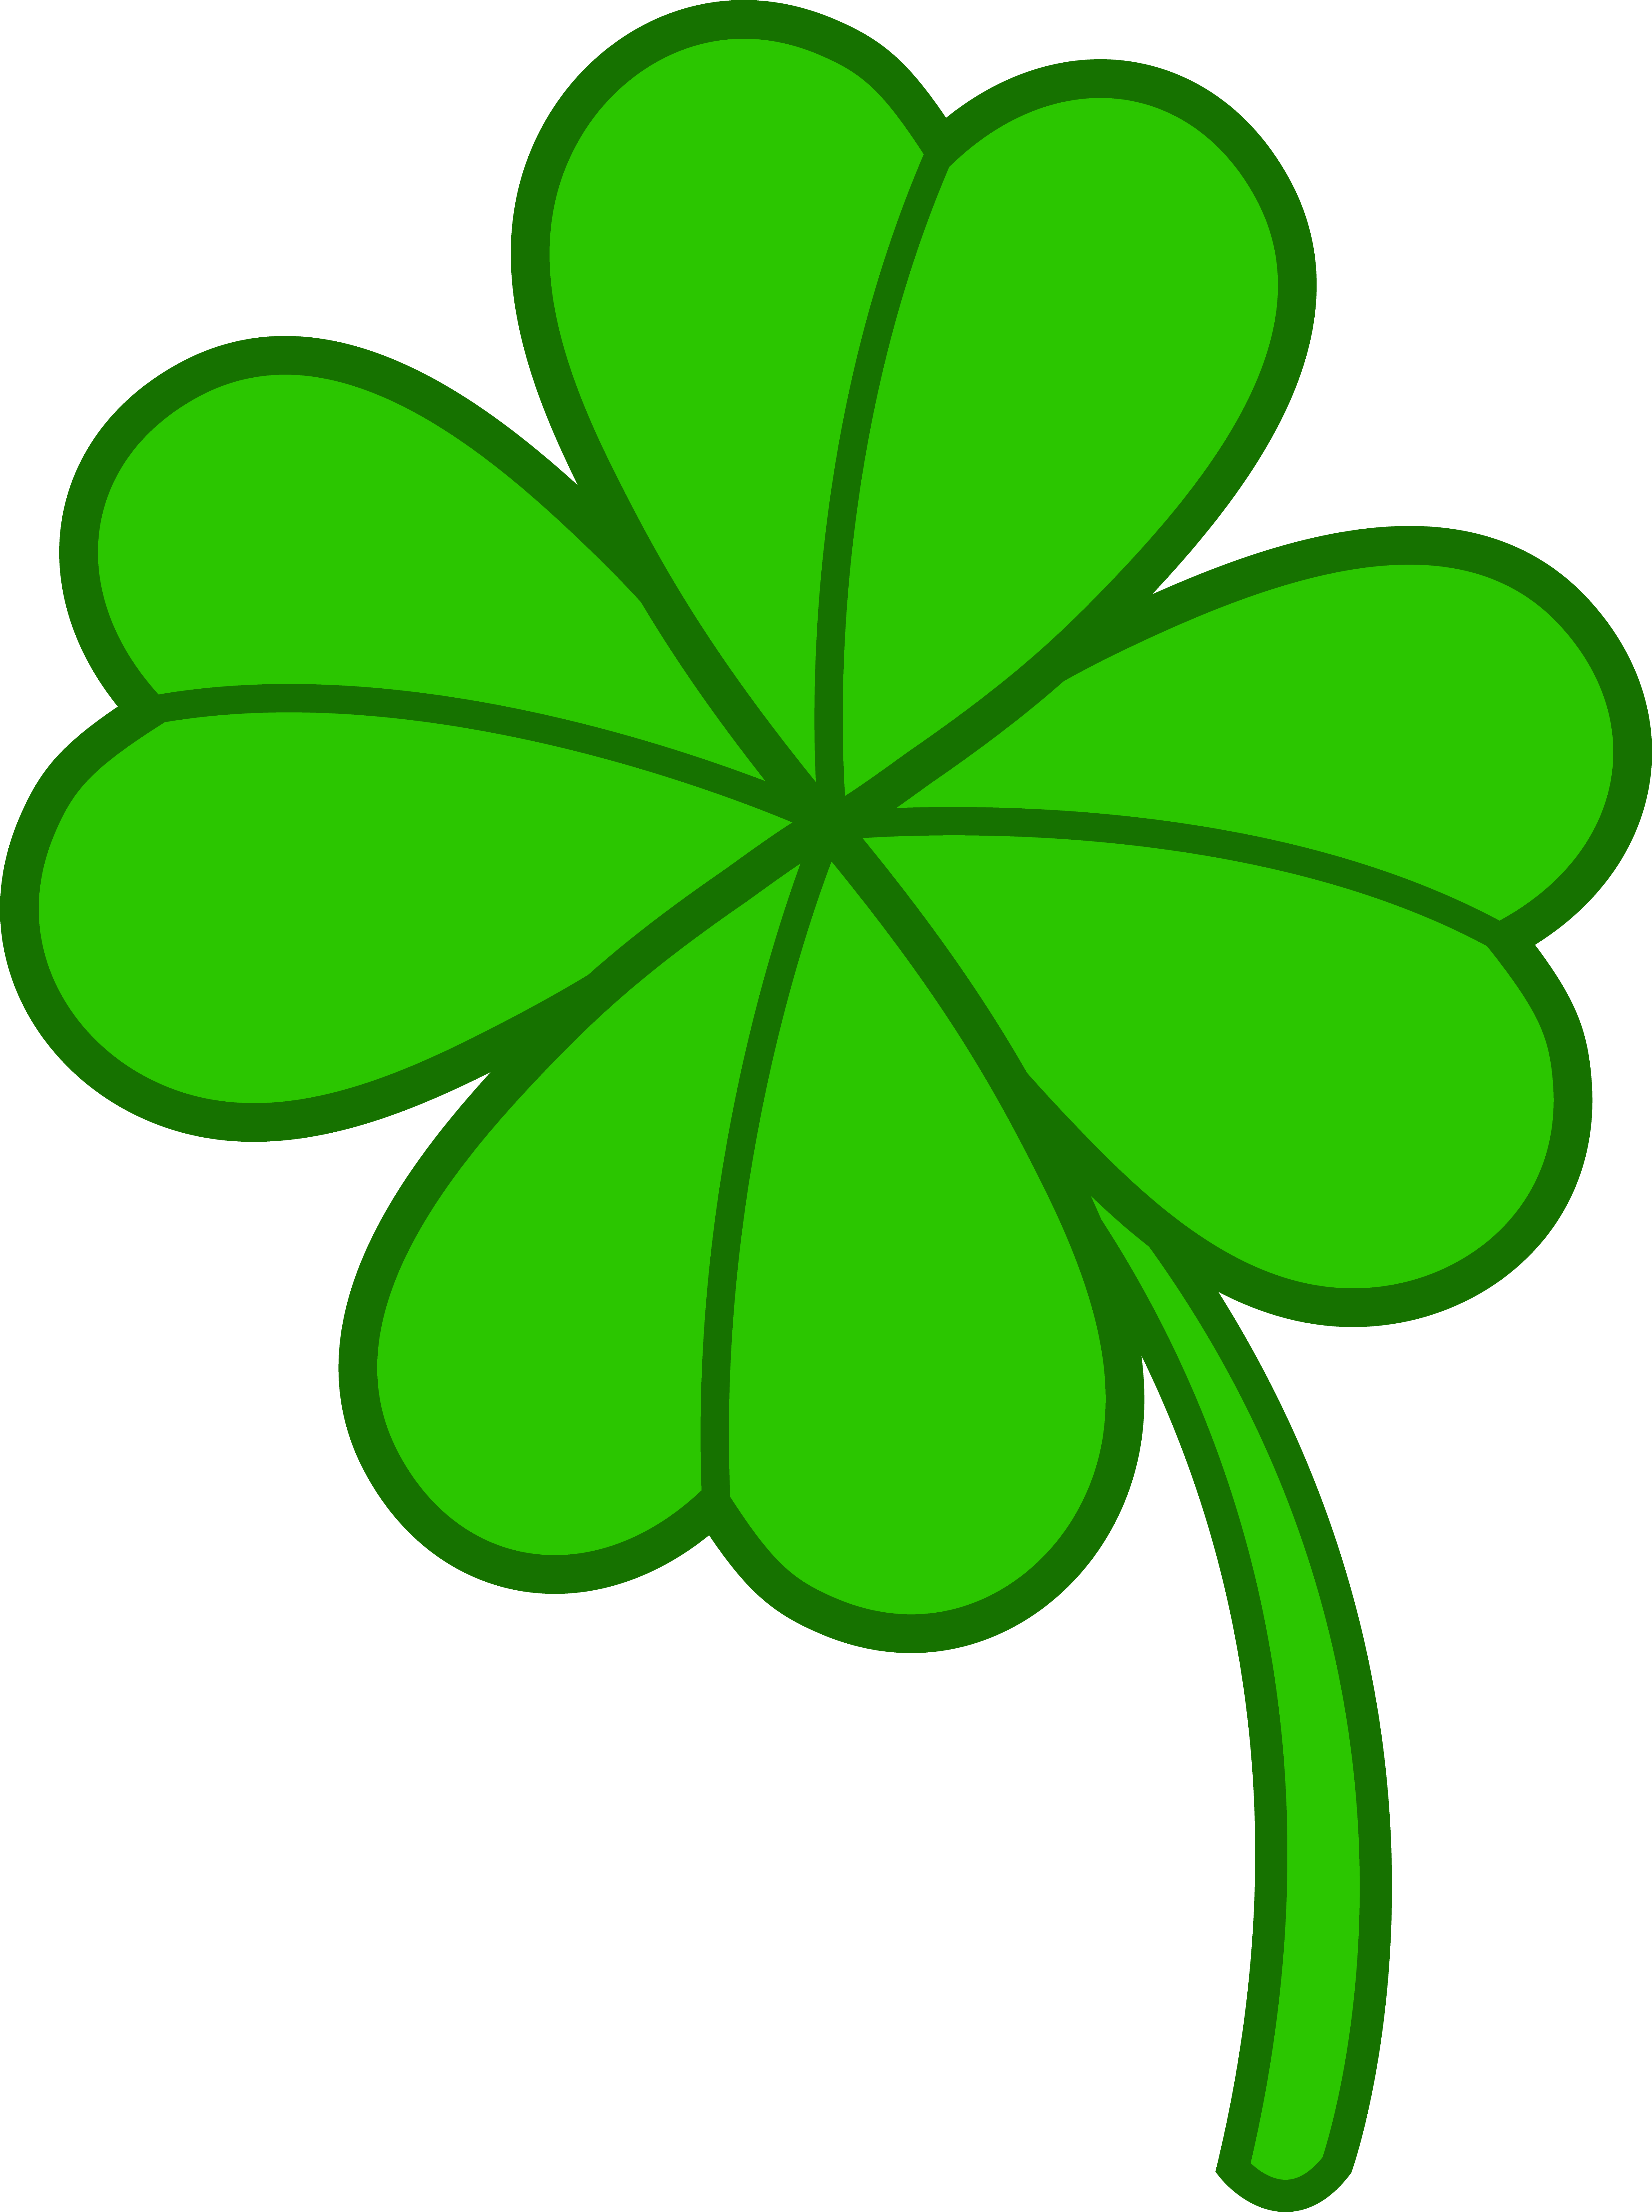 Tiny shamrock clipart picture free library Shamrock Clipart tiny 28 - 5328 X 7134 Free Clip Art stock ... picture free library